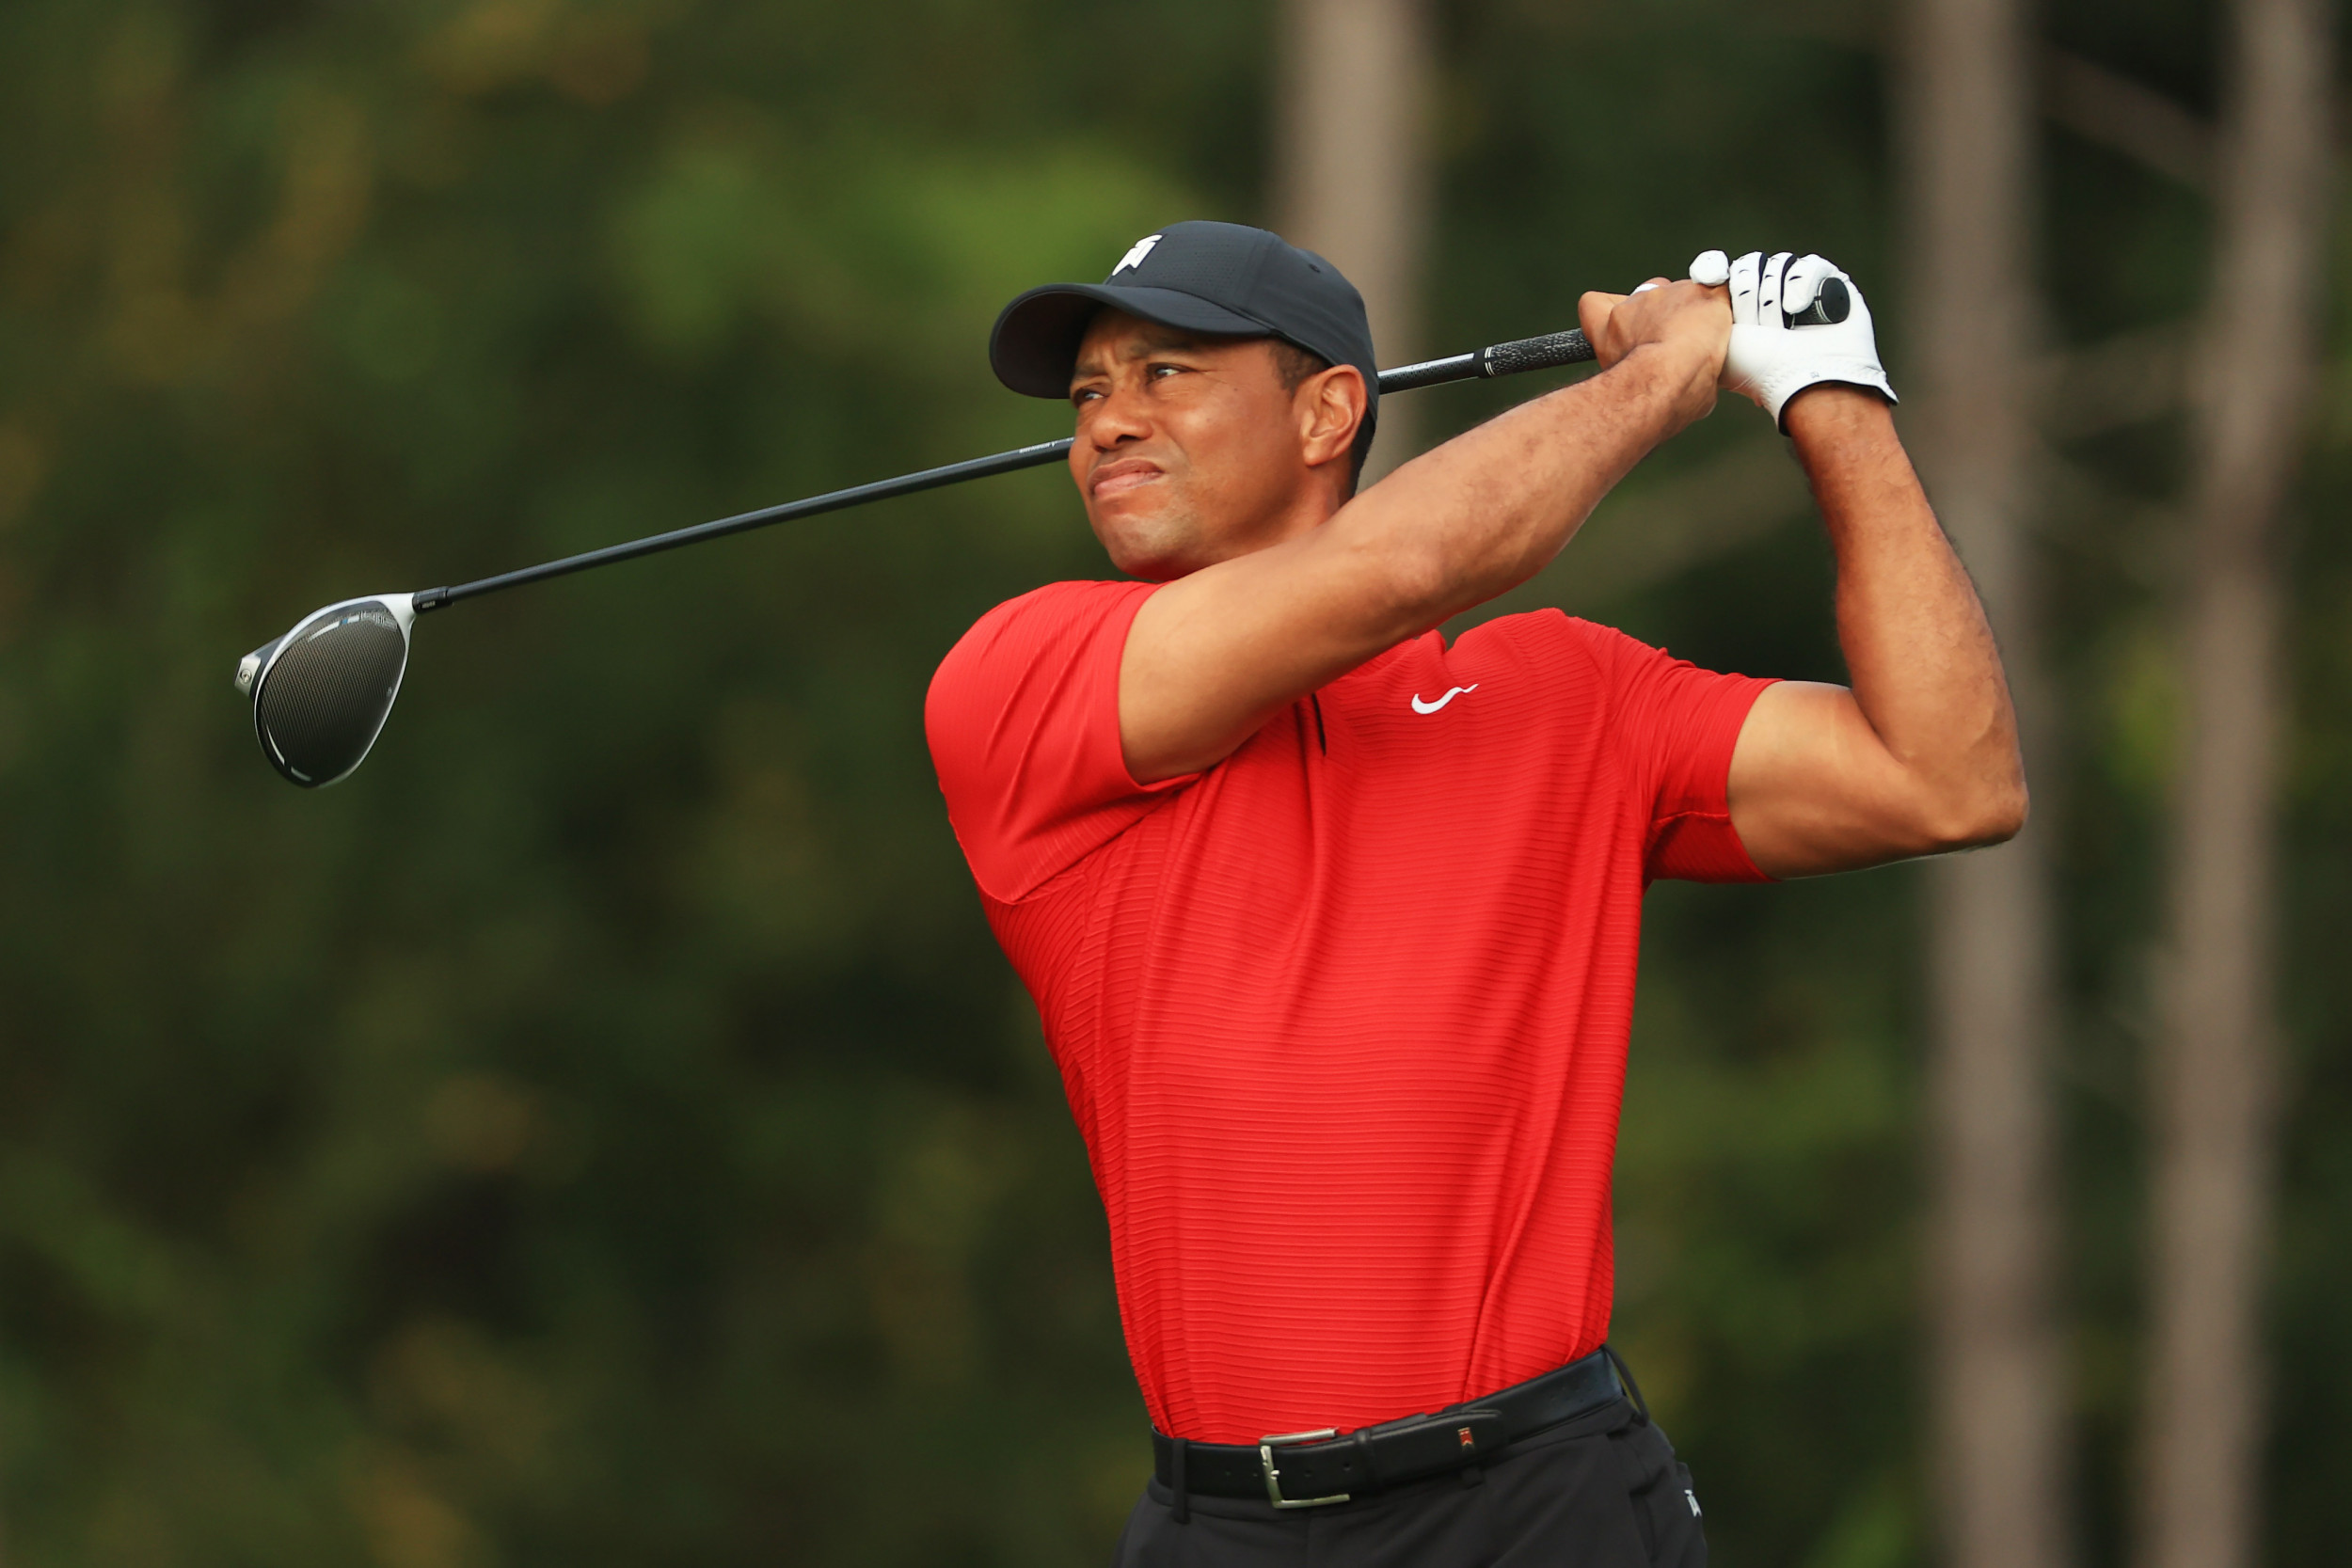 How Tiger Woods' road to recovery might look, according to medical experts